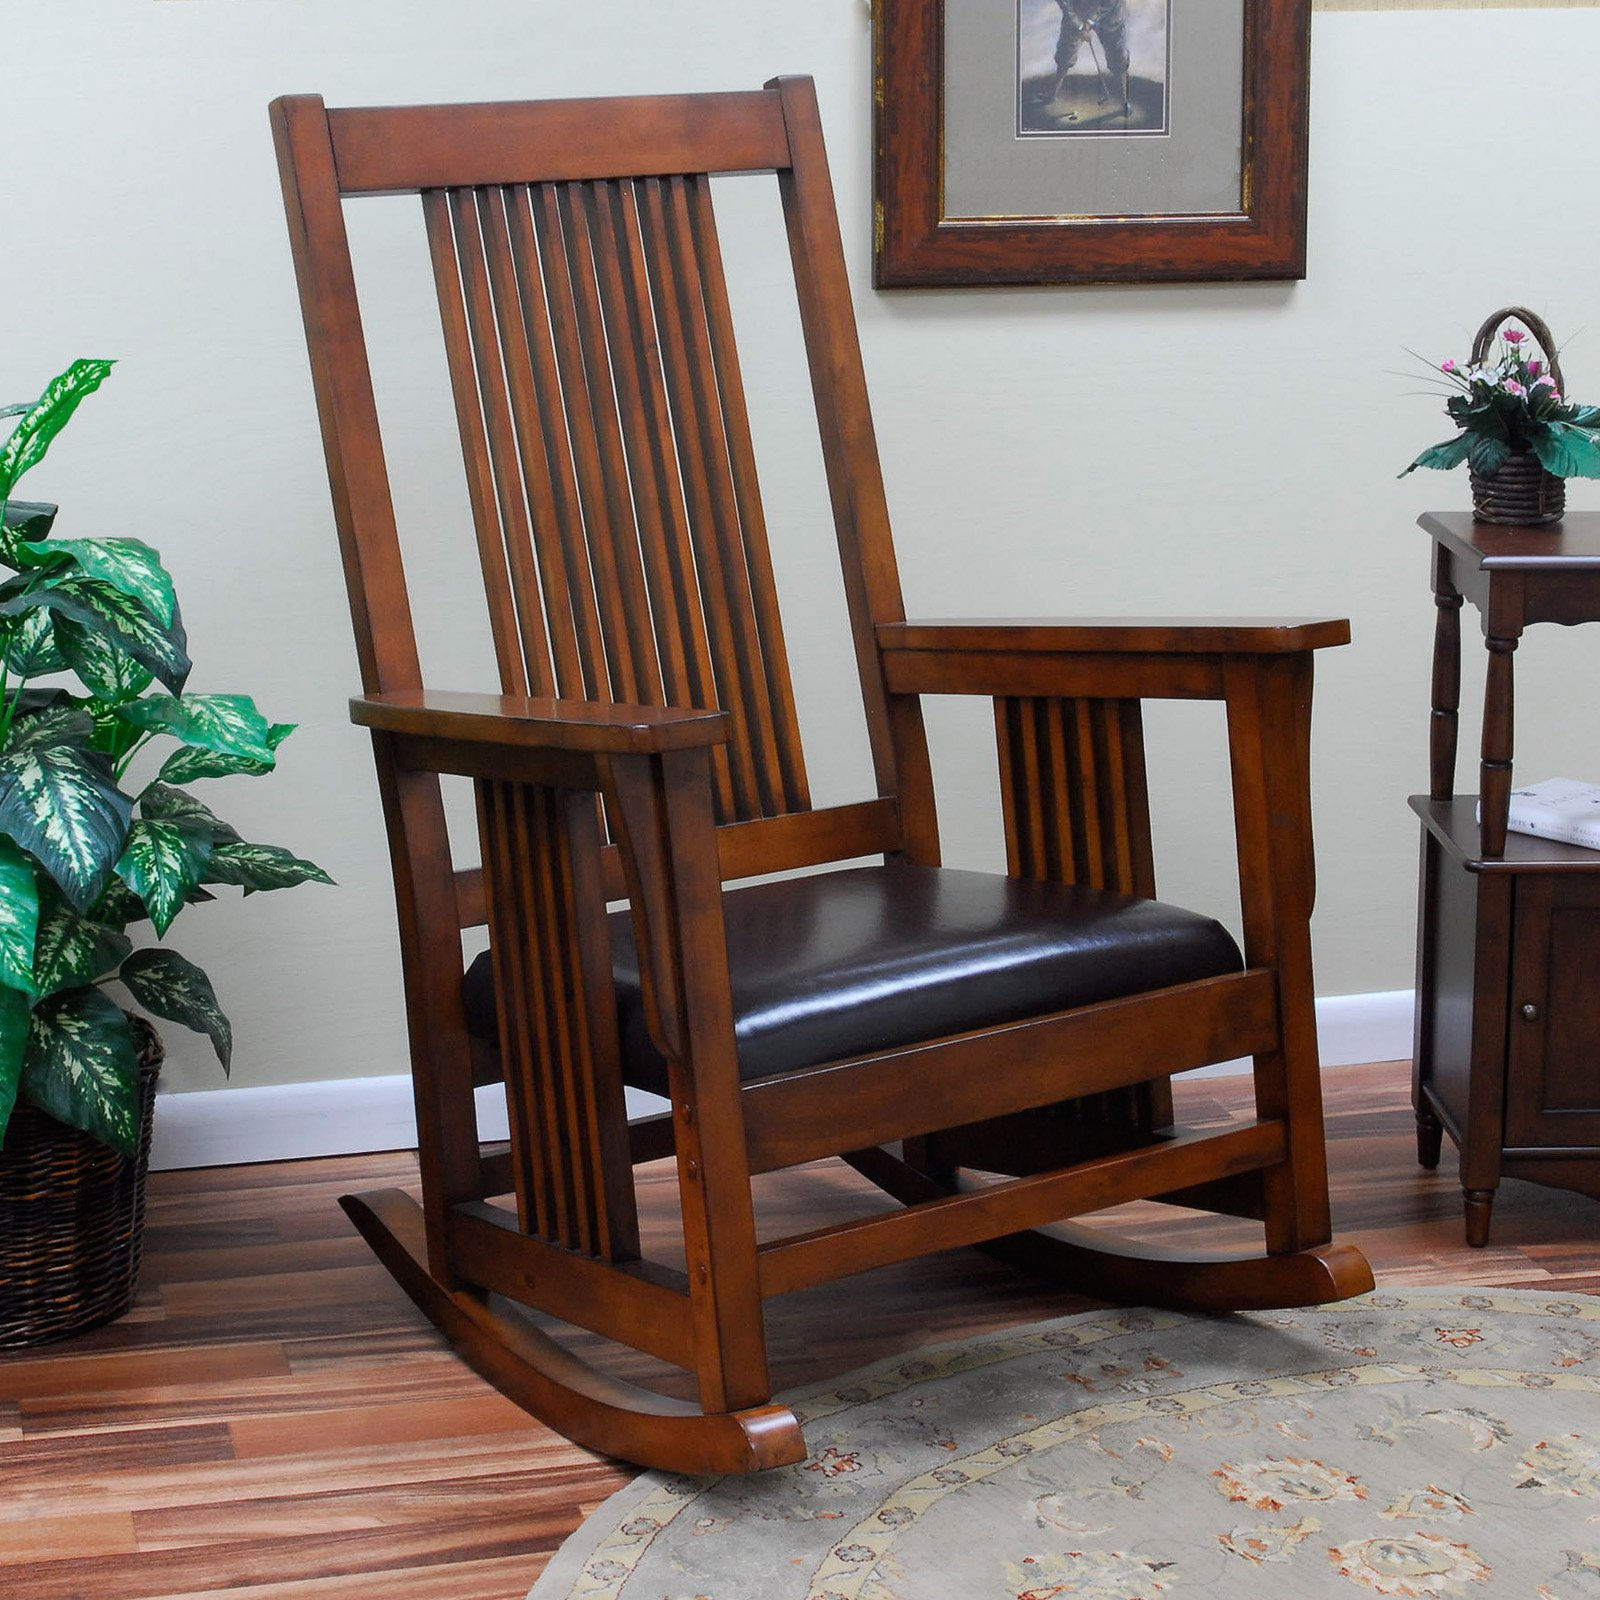 Carolina Chair and Table Mission Rocking Chair